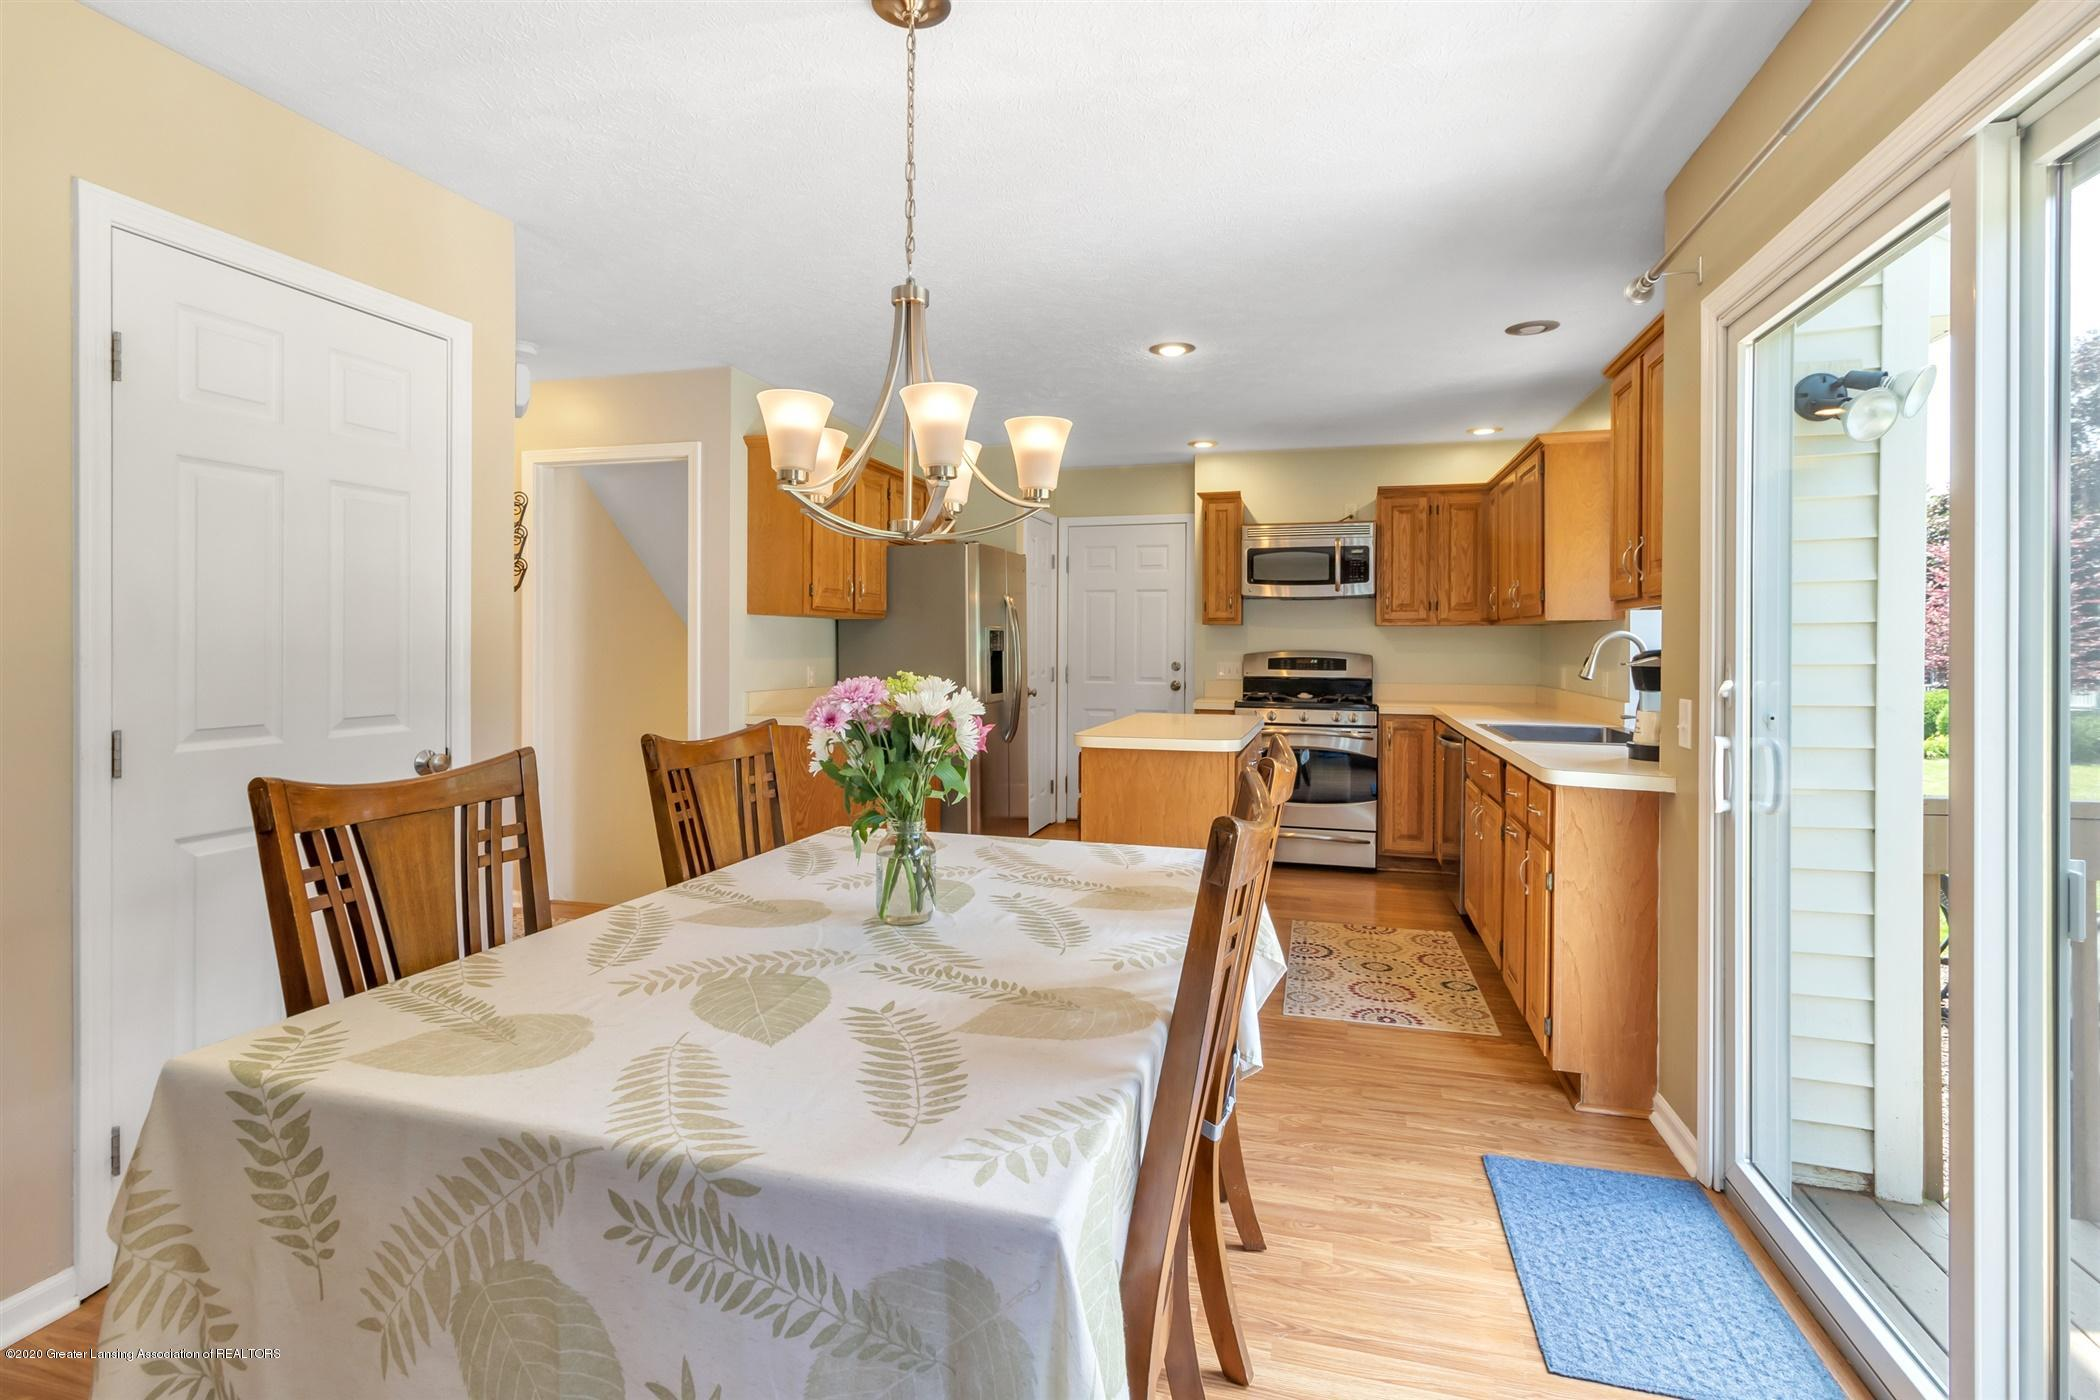 2945 Whistlewood Way - 13-2945Whistlewood-WindowStill-Real - 13